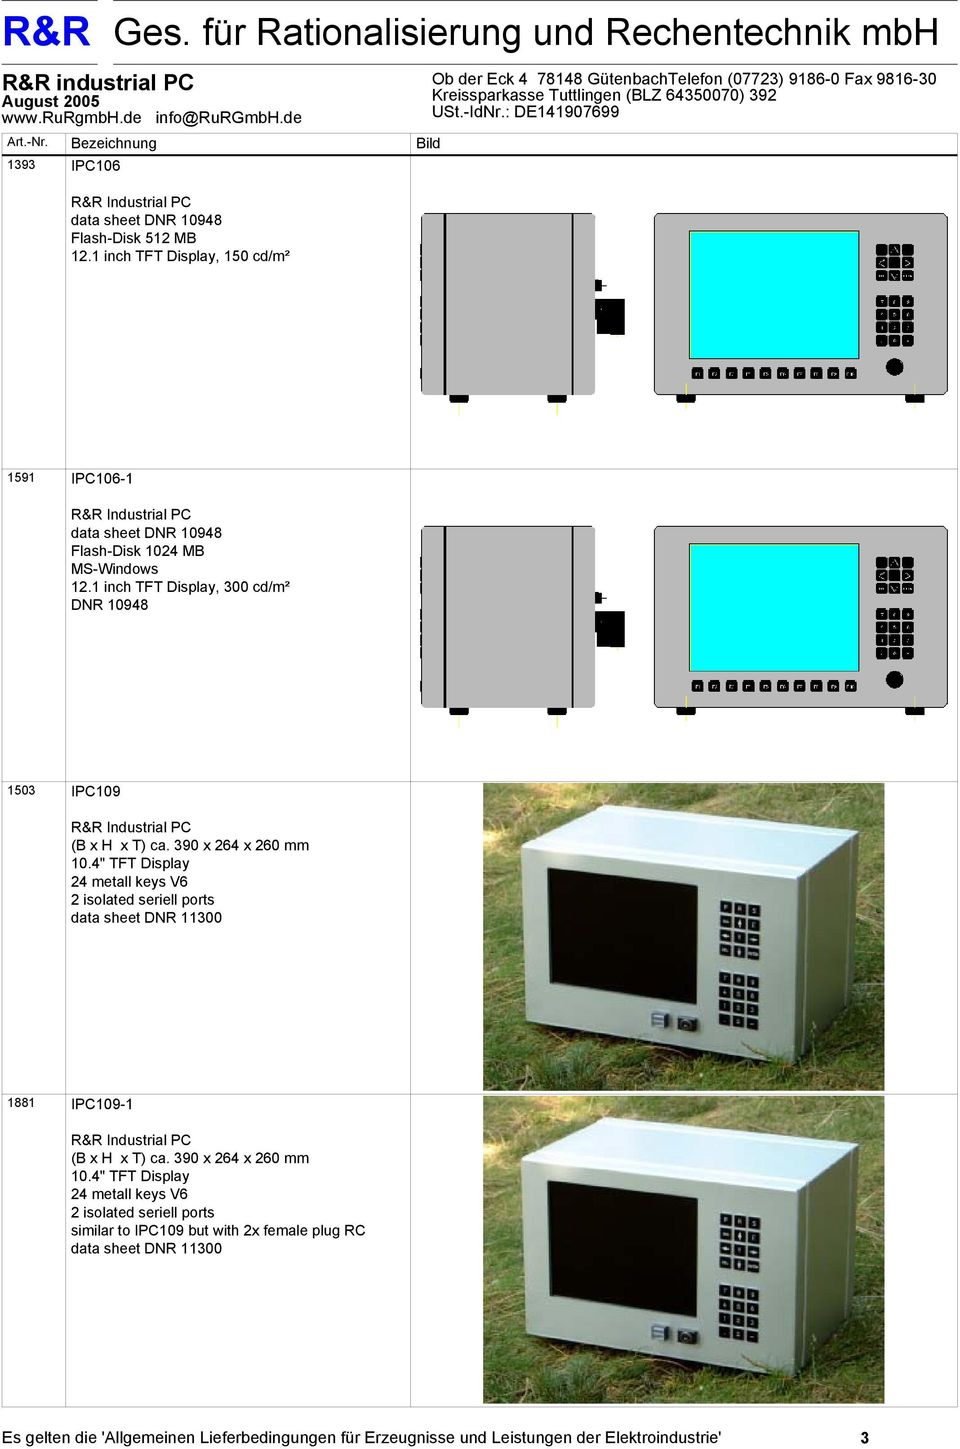 1 inch TFT Display, 300 cd/m² DNR 10948 1503 IPC109 (B x H x T) ca. 390 x 264 x 260 mm 10.